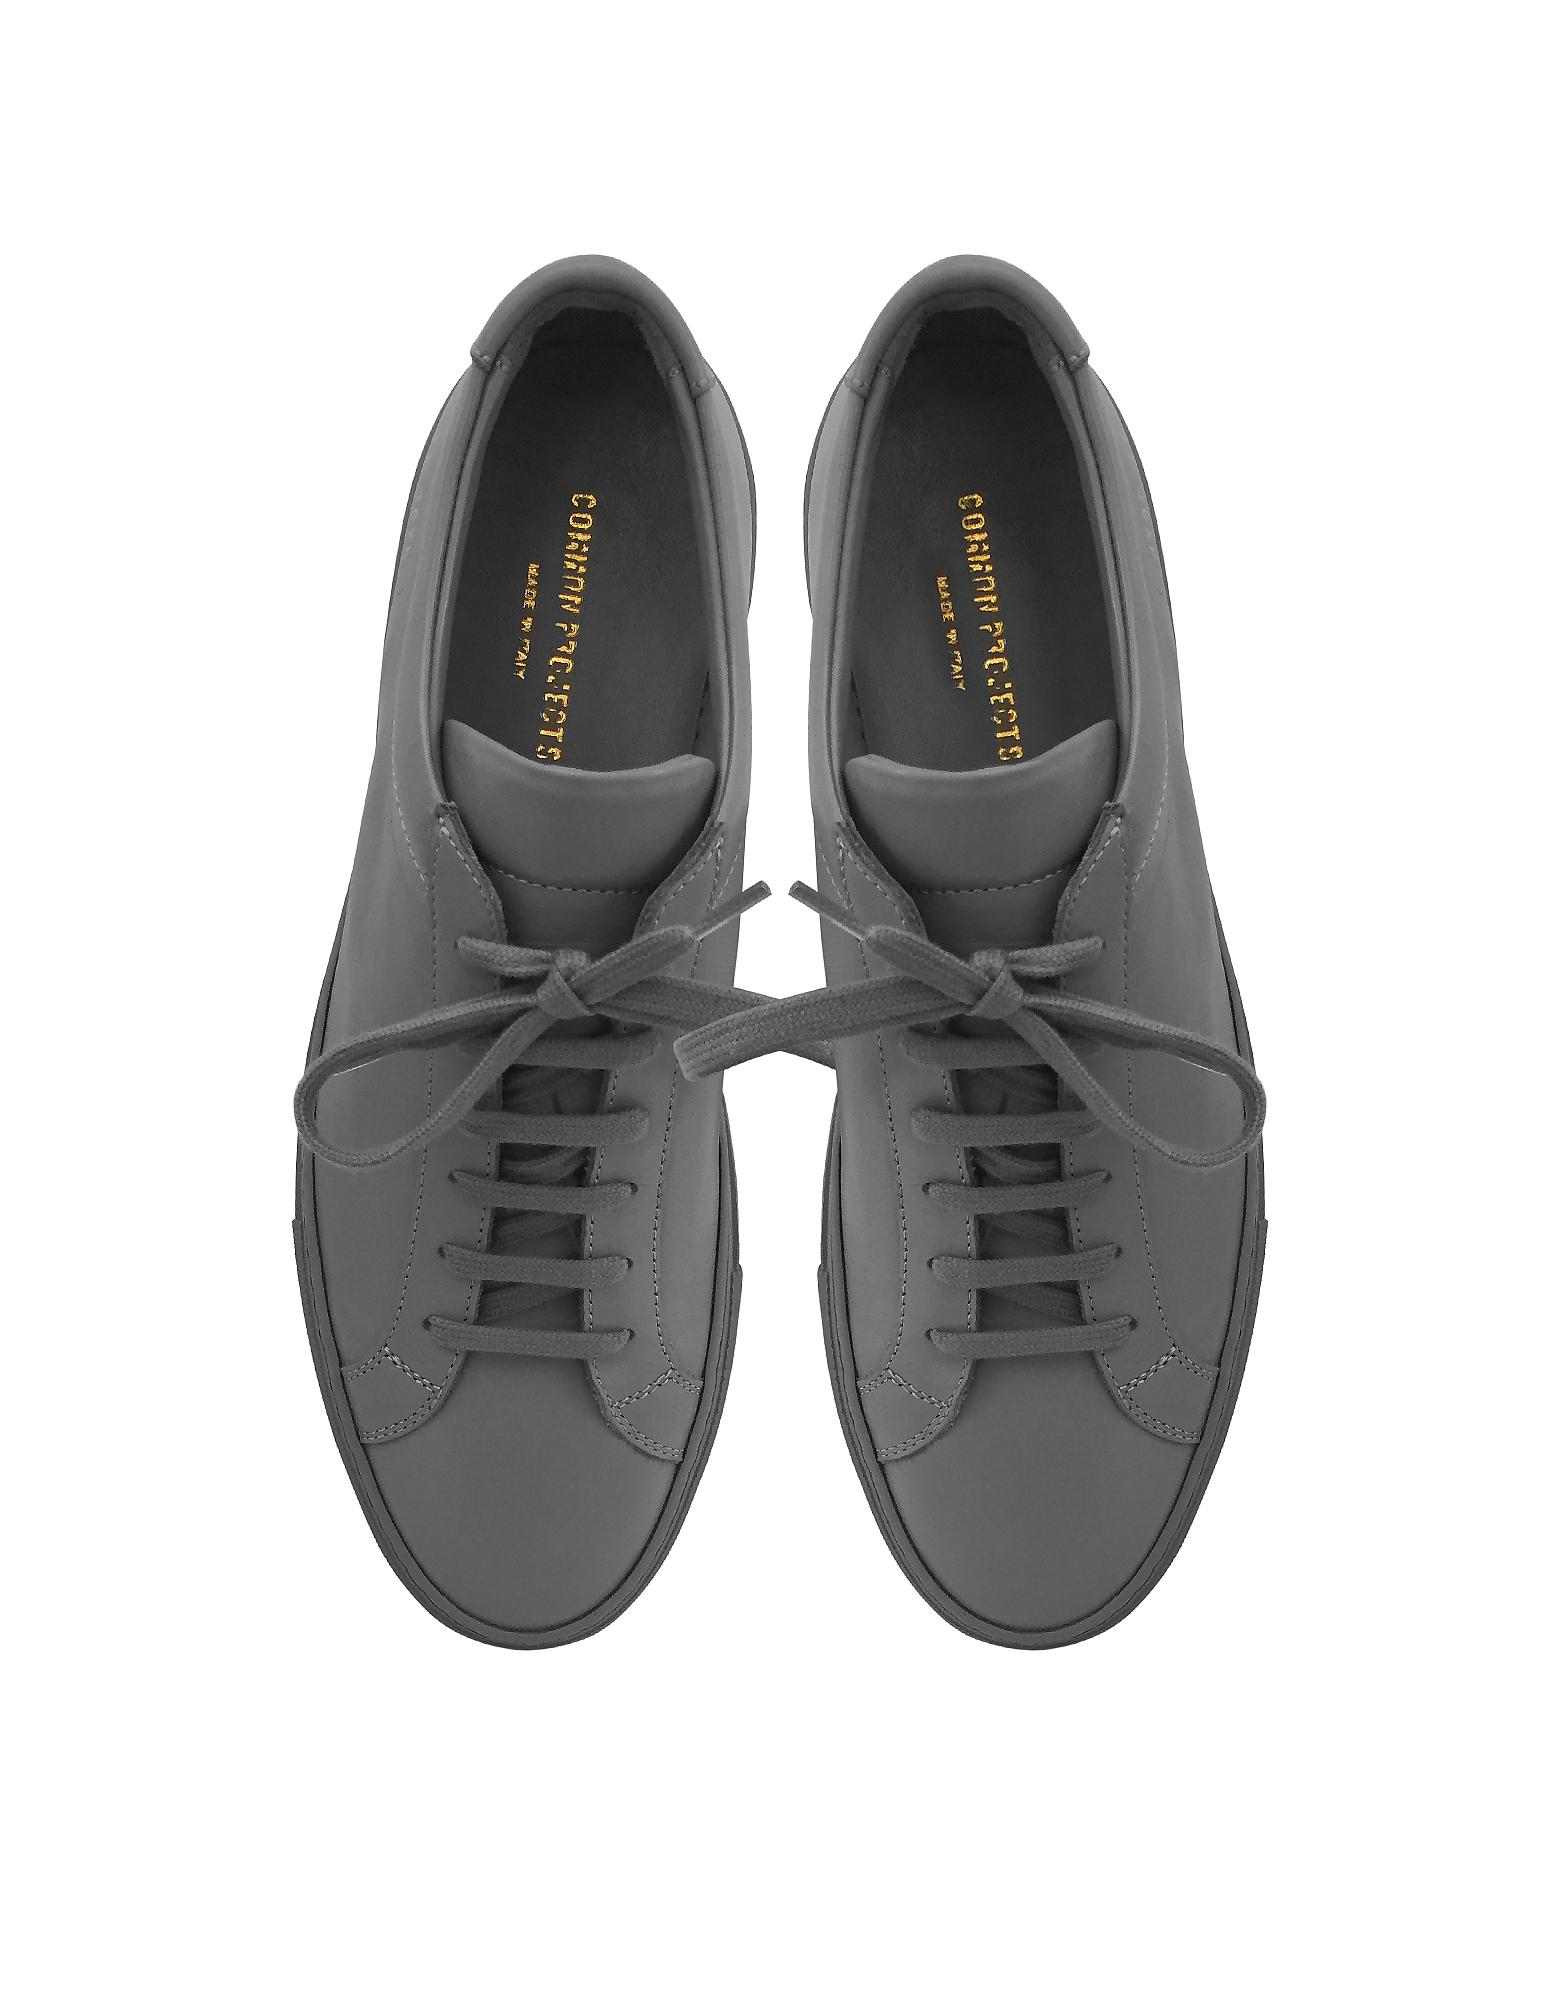 28662402626b Lyst - Common Projects Medim Grey Leather Original Achilles Low ...